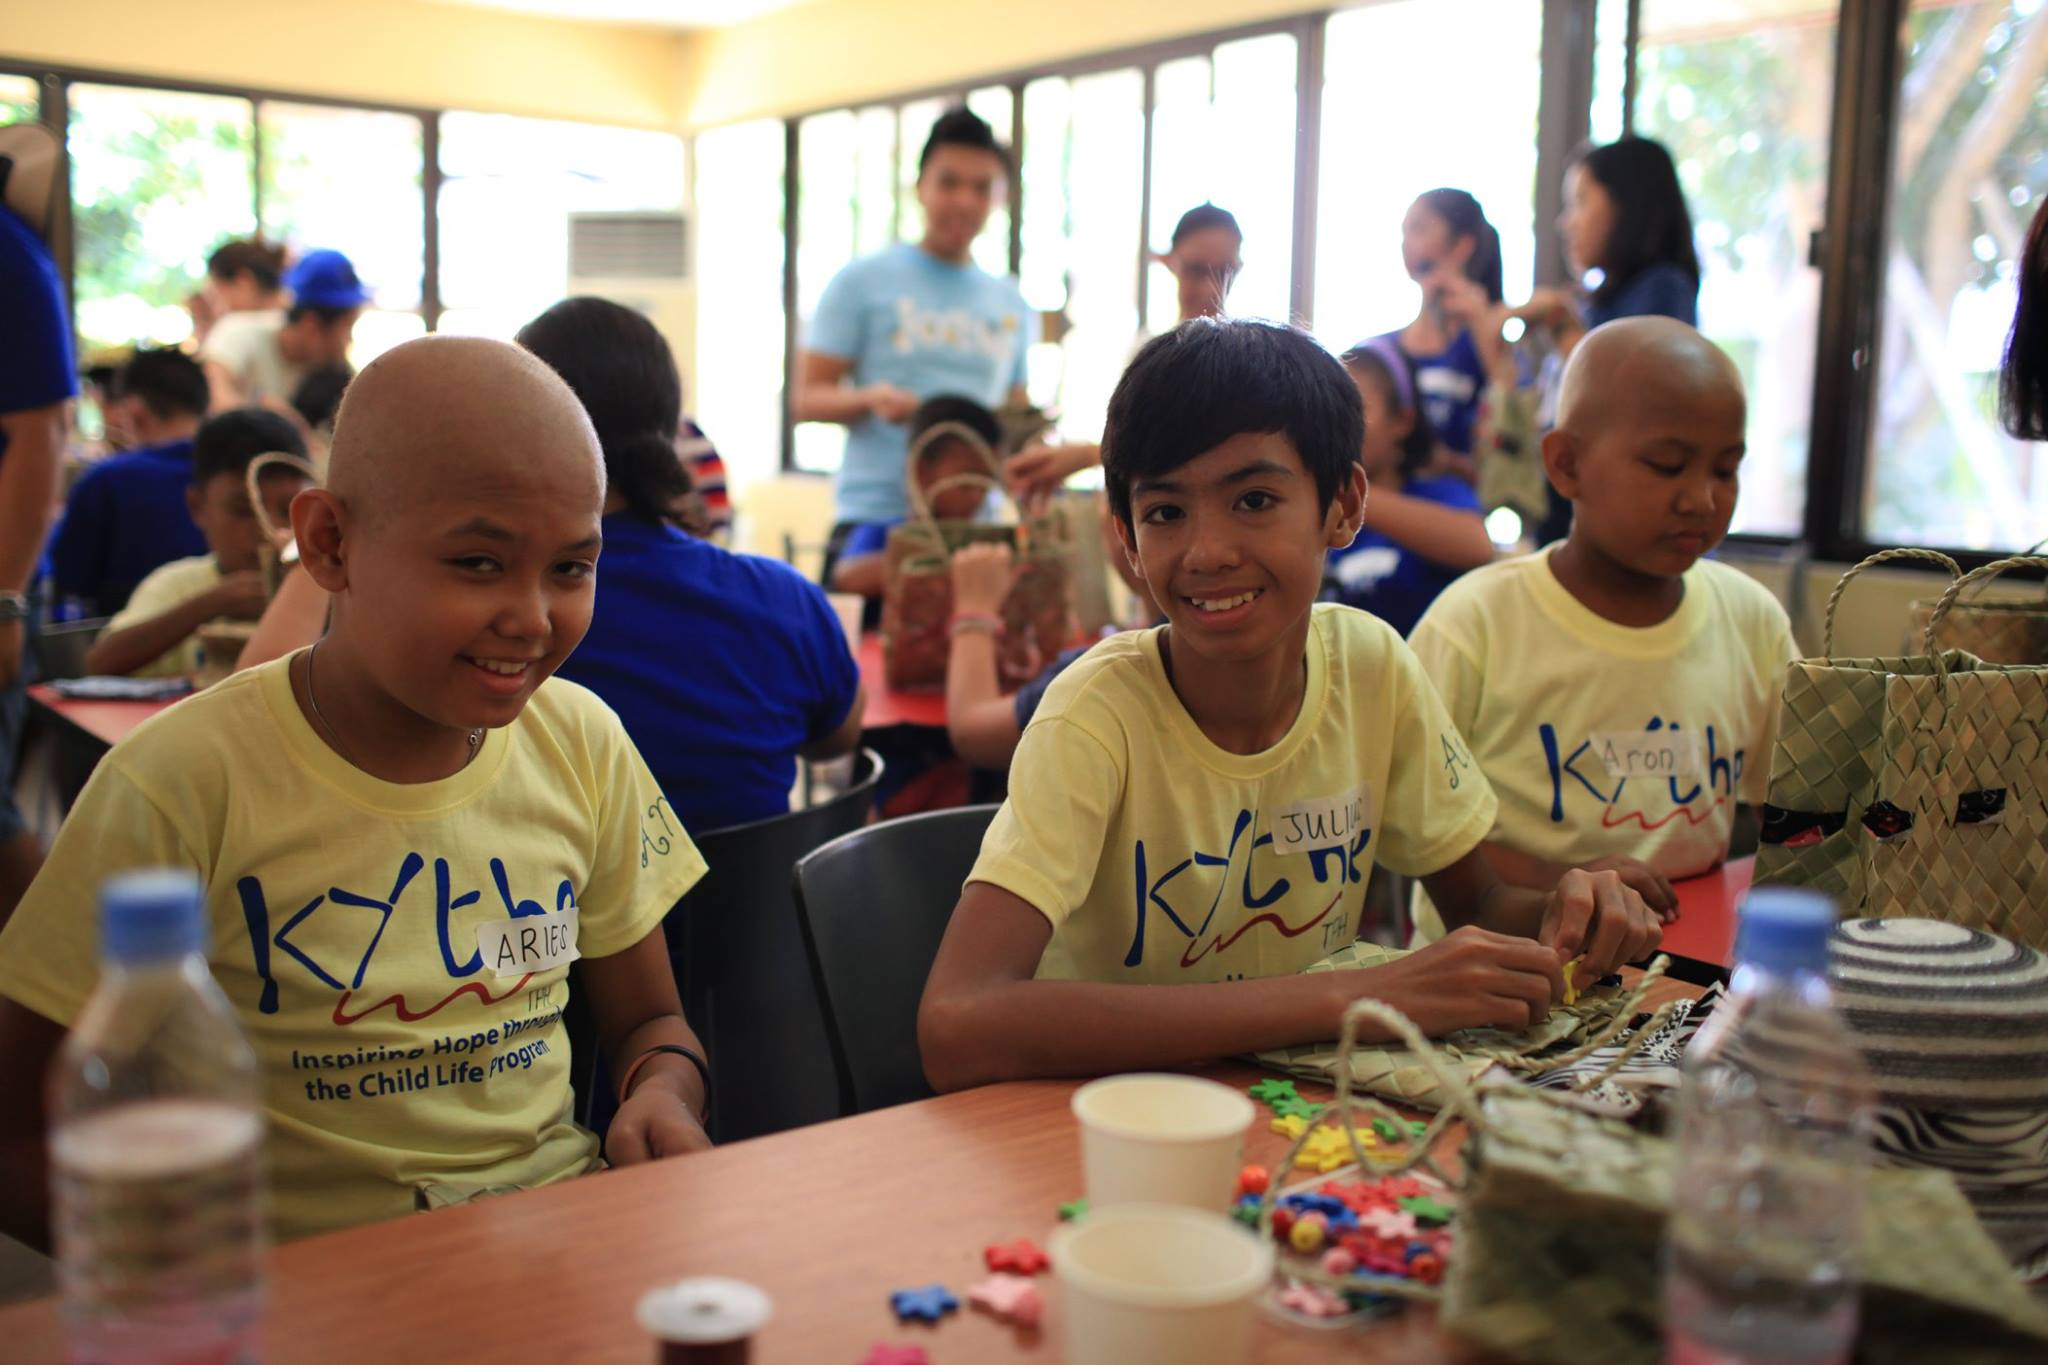 SIMPLE JOYS. Some of Kythe's kids make arts and crafts during one of the organization's events. Photo from Kythe